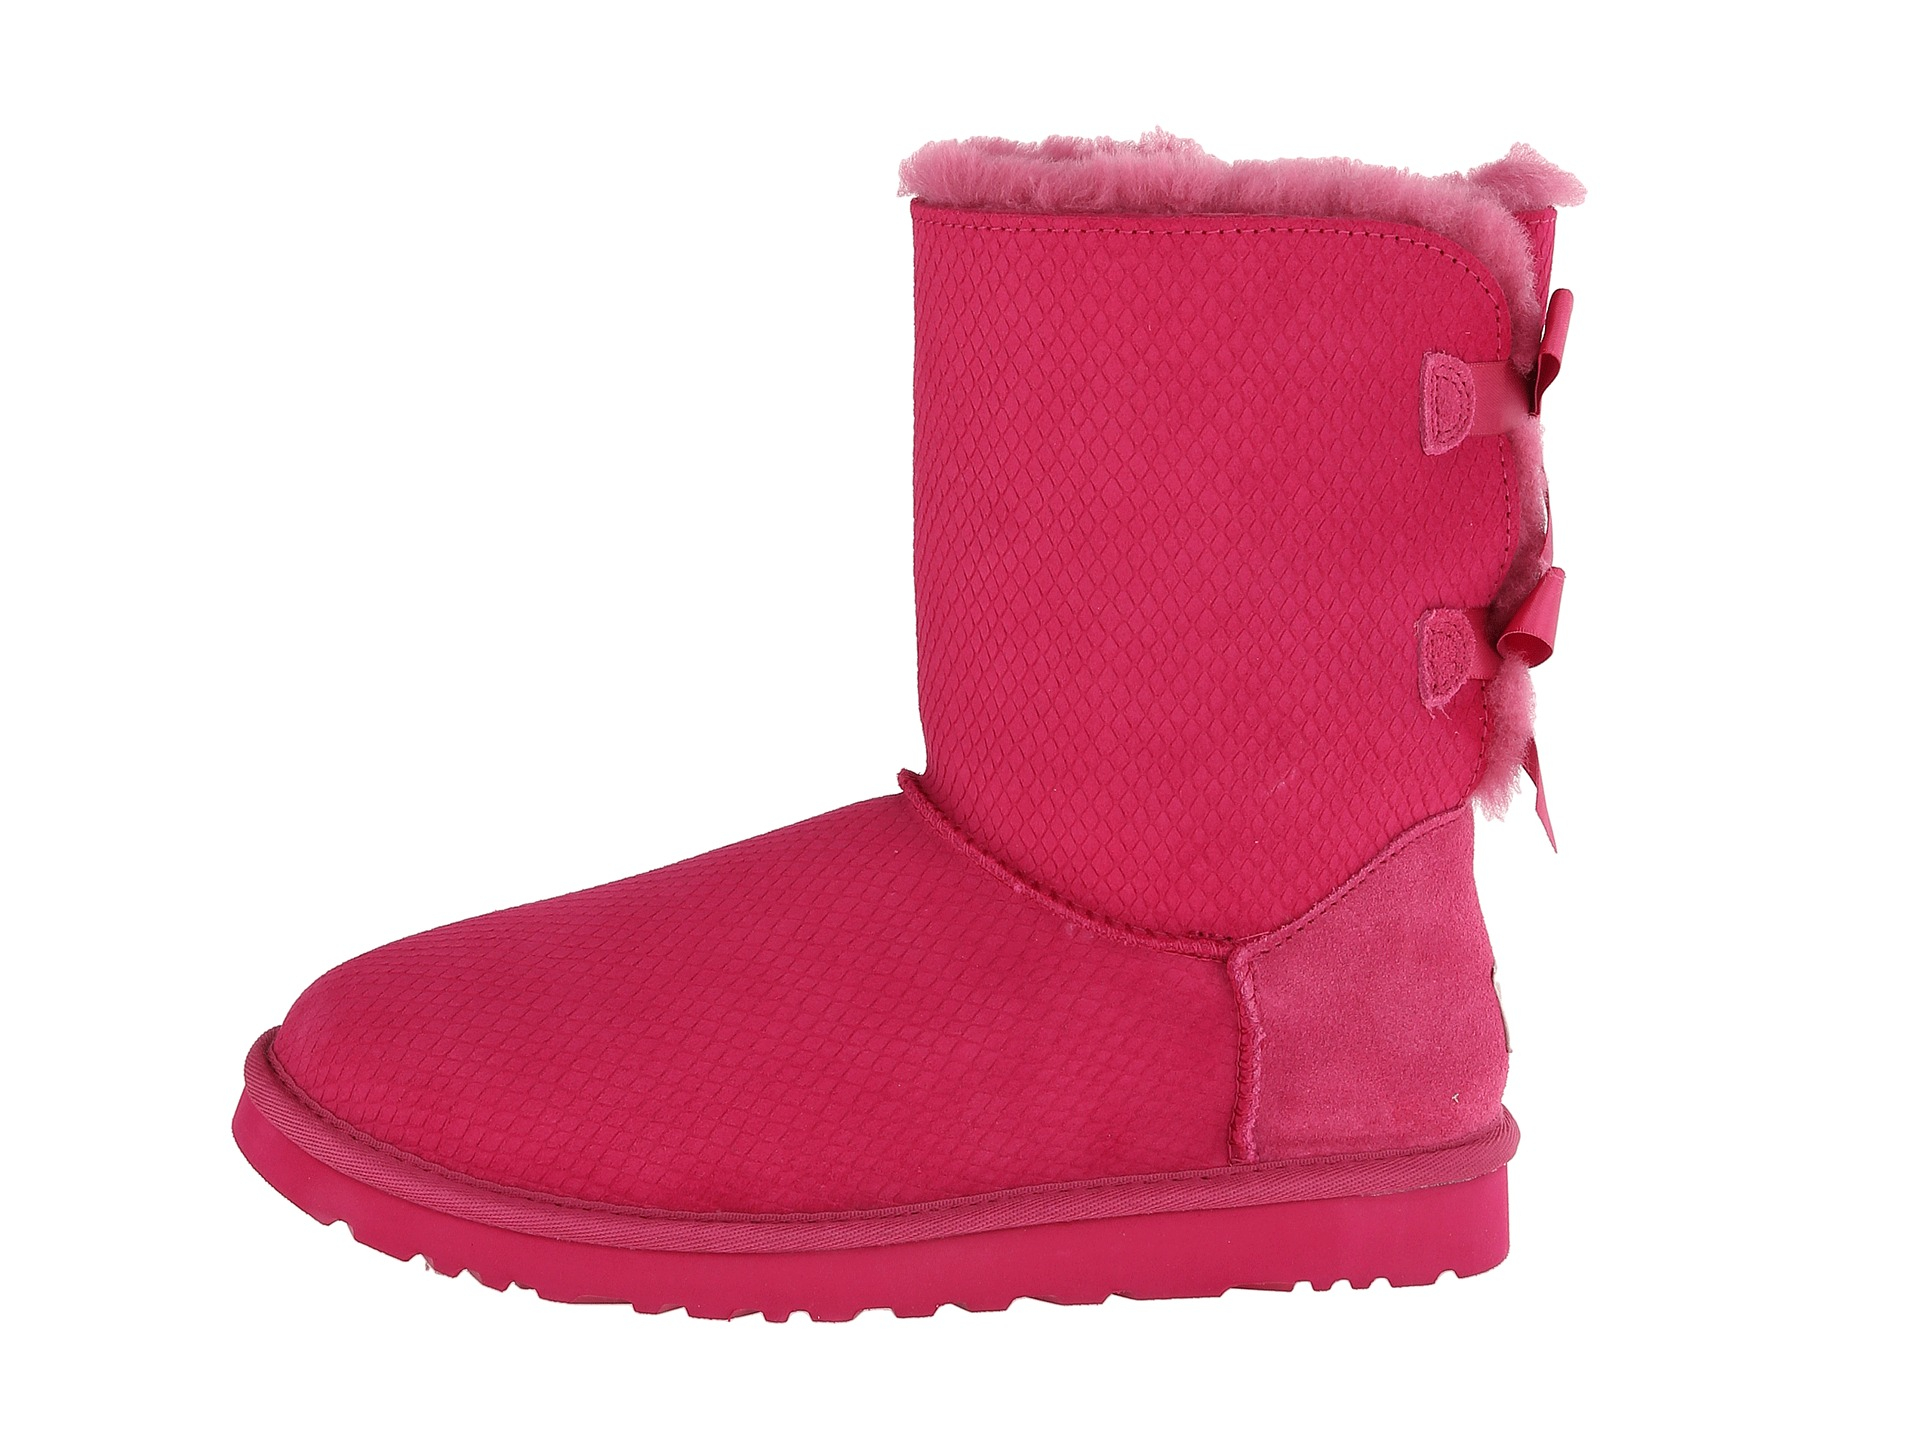 352ee6345b5 Lyst - UGG Bailey Bow Exotic Scales in Pink